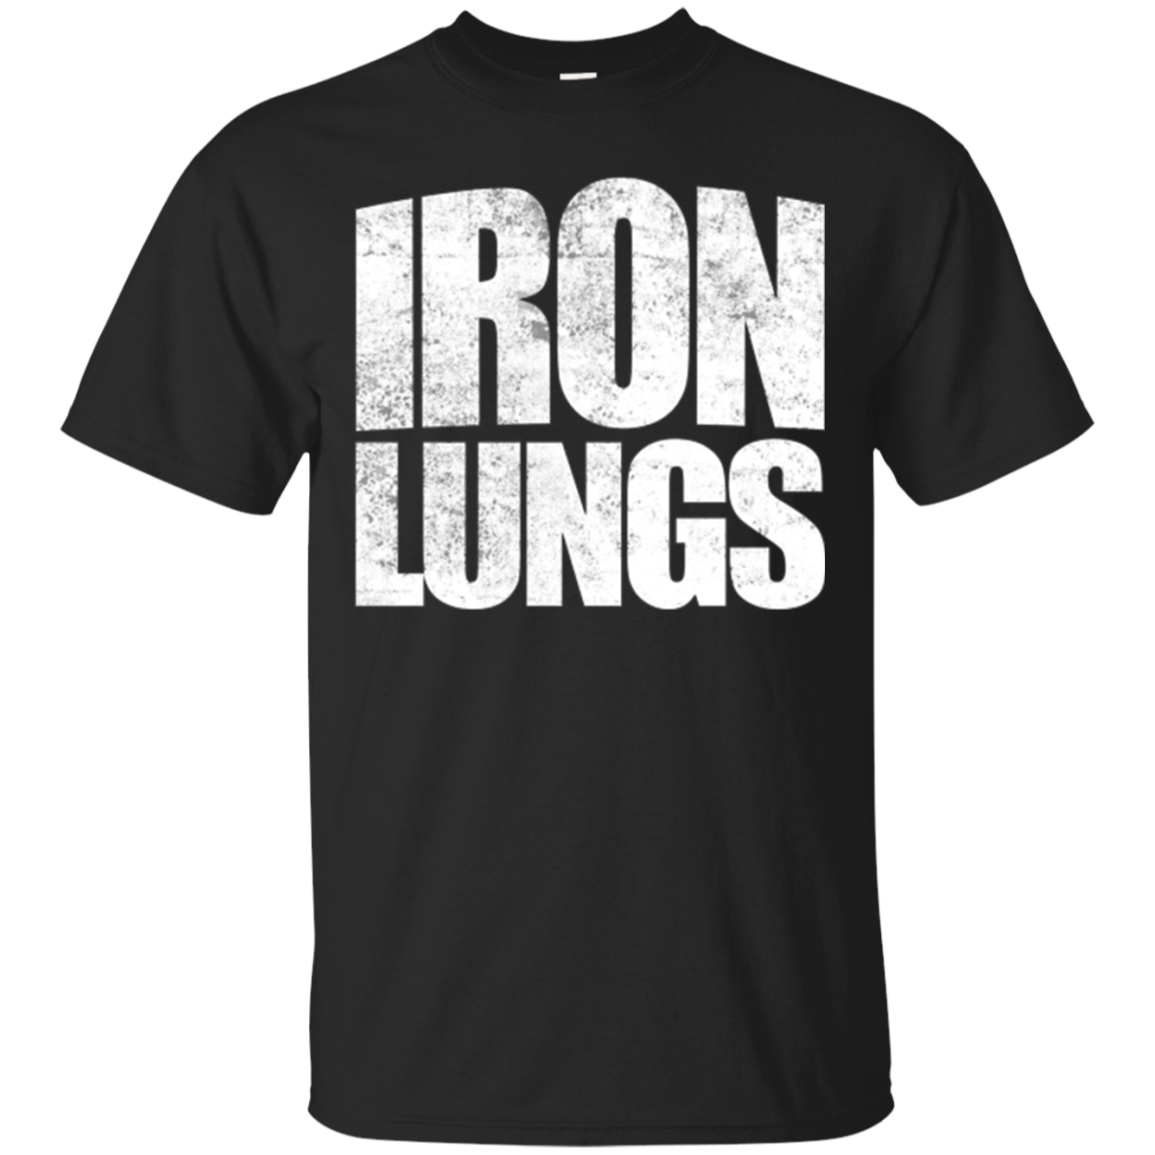 Iron lungs shirt Funny Mary Jane shirt smoker stoner shirt